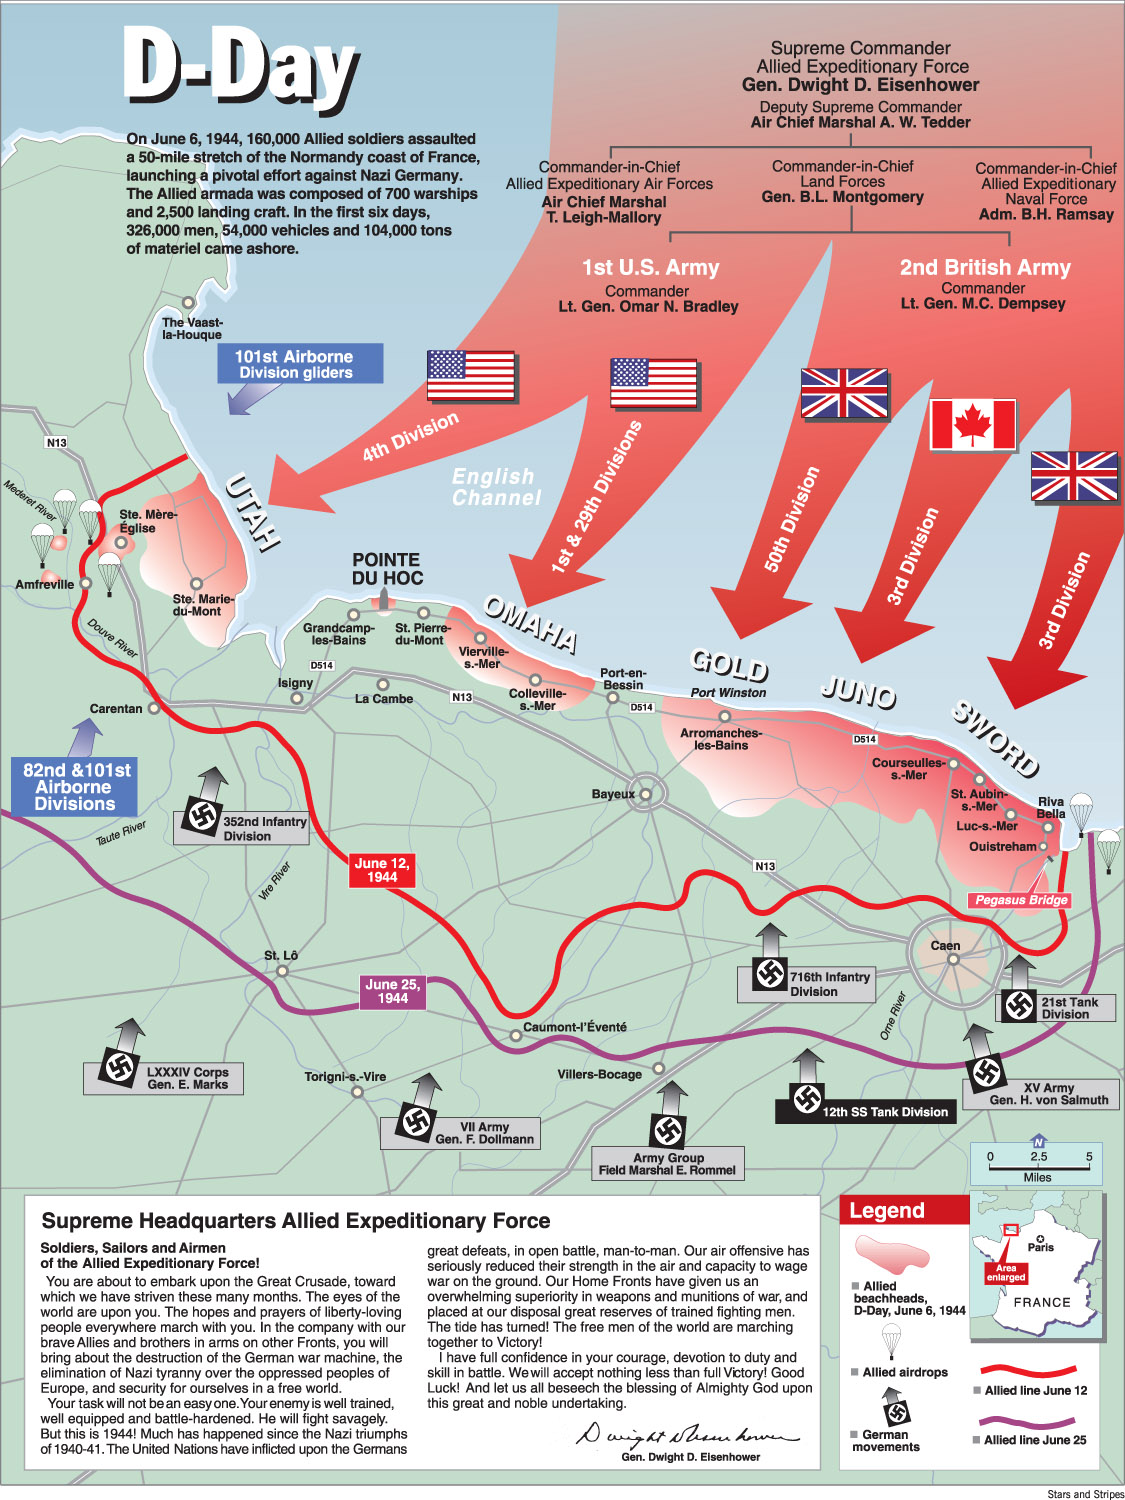 D-Day map Latest version